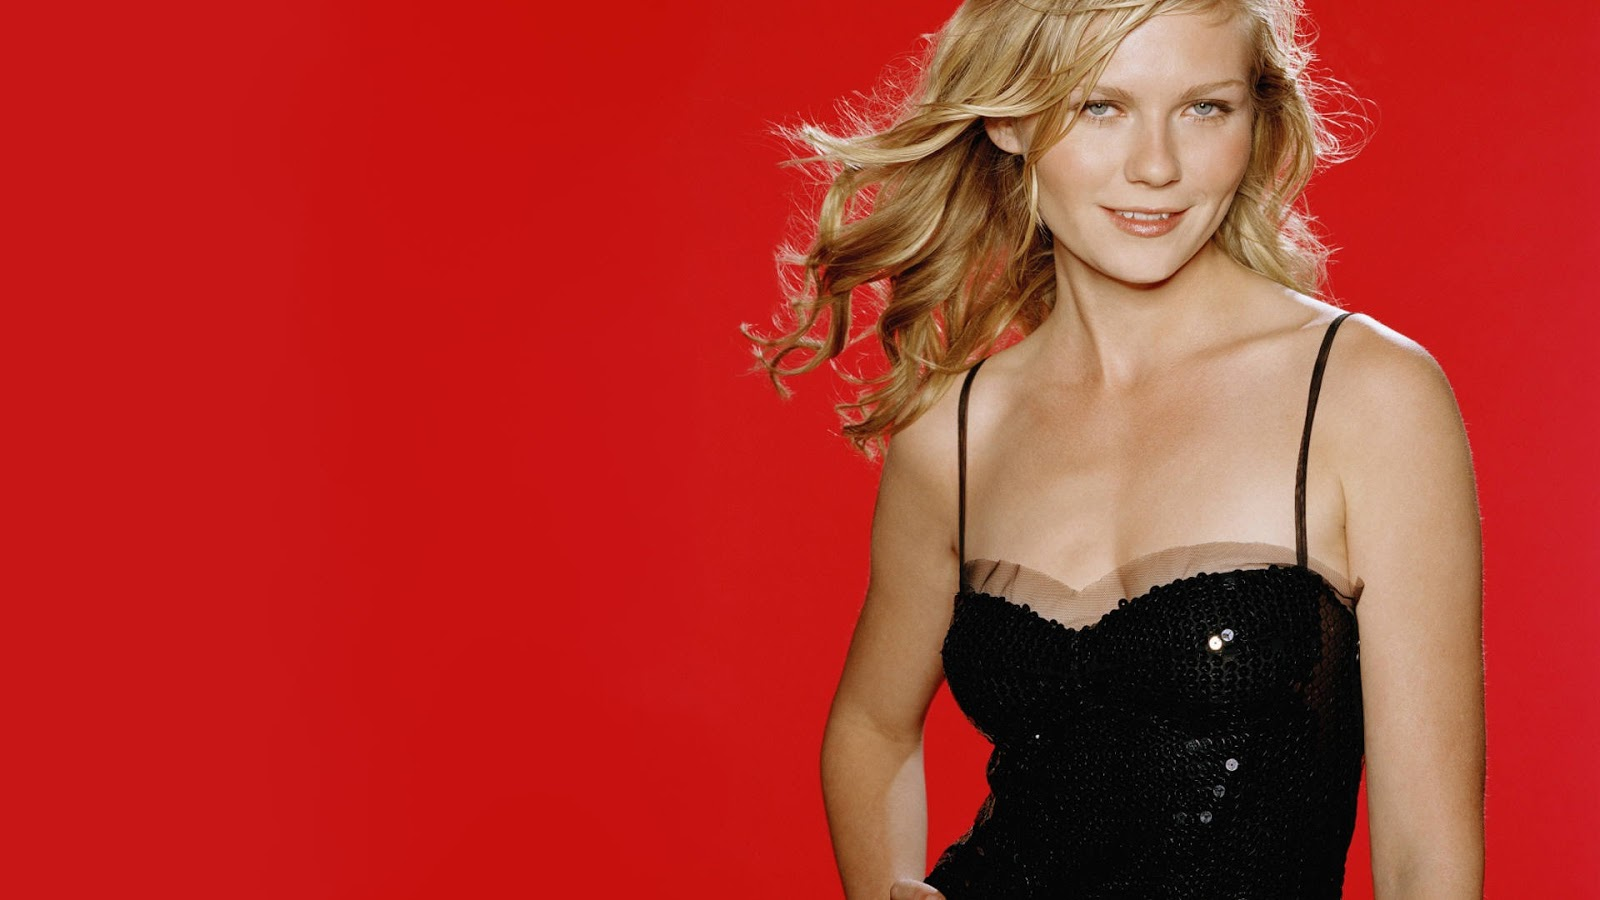 Kirsten Dunst Hd Wallpapers  Wall Pc-8729